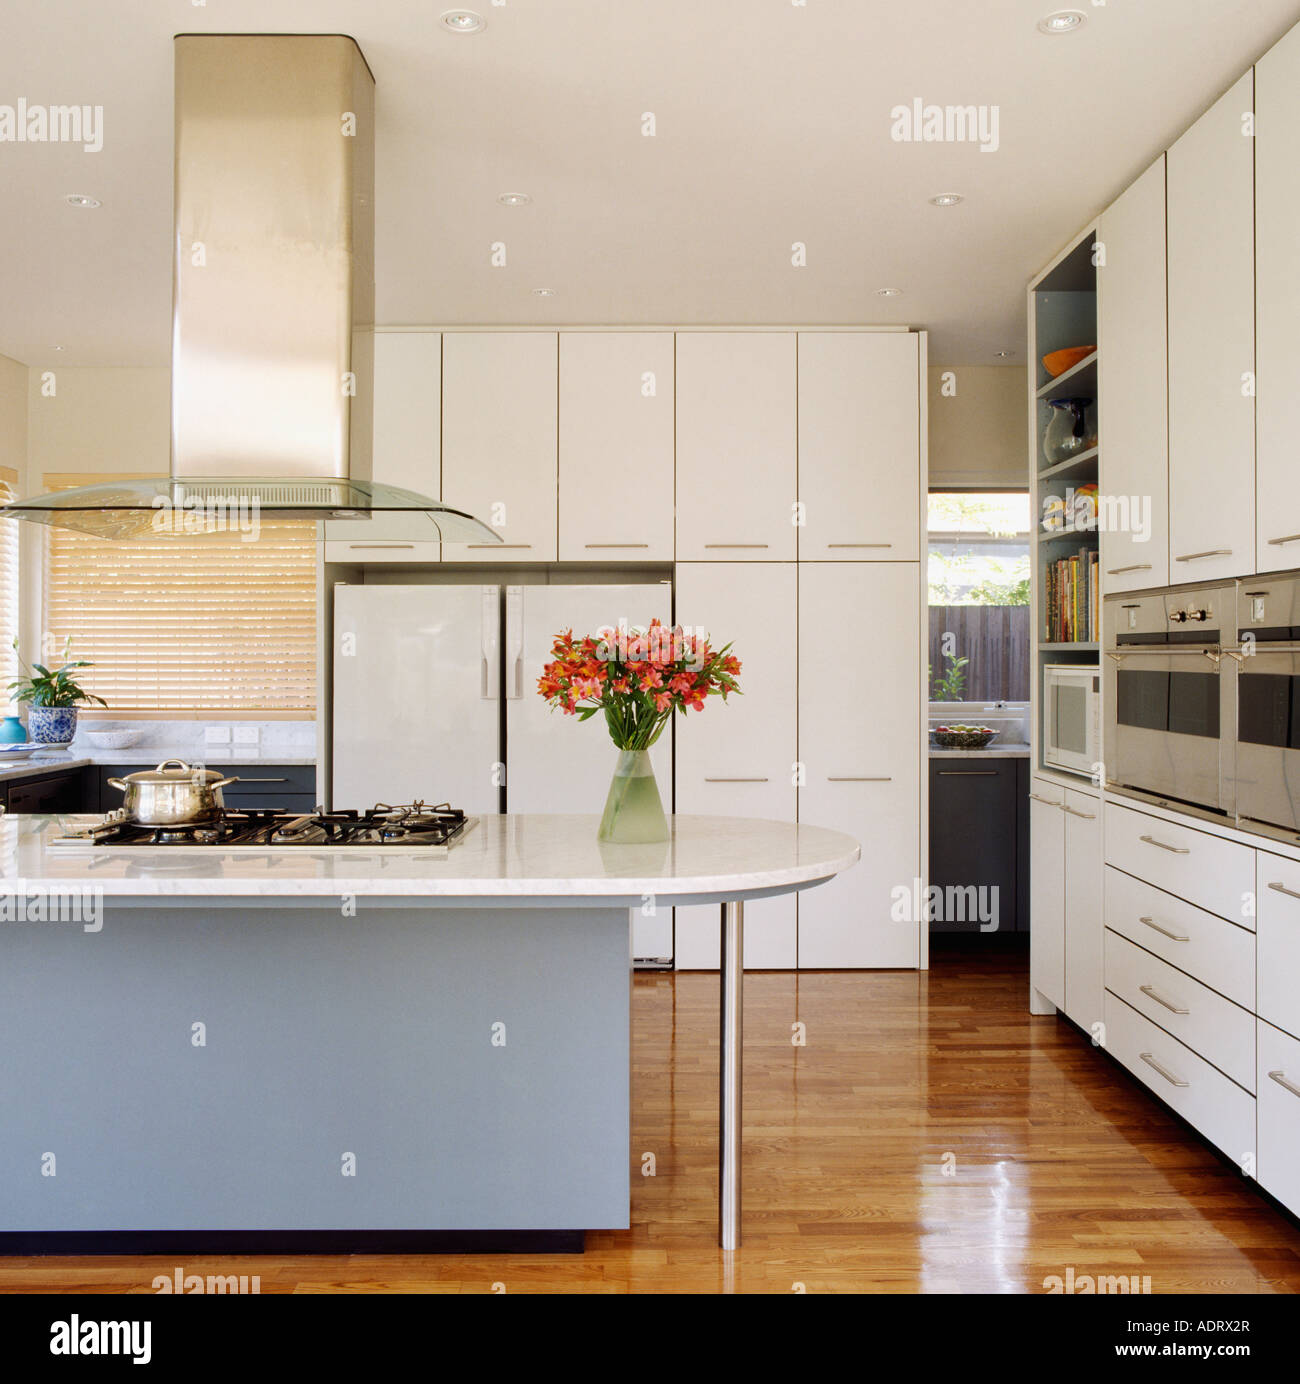 Kitchen Island Designs With Hob: Extractor Fan Above Hob In Blue Island Unit In Modern